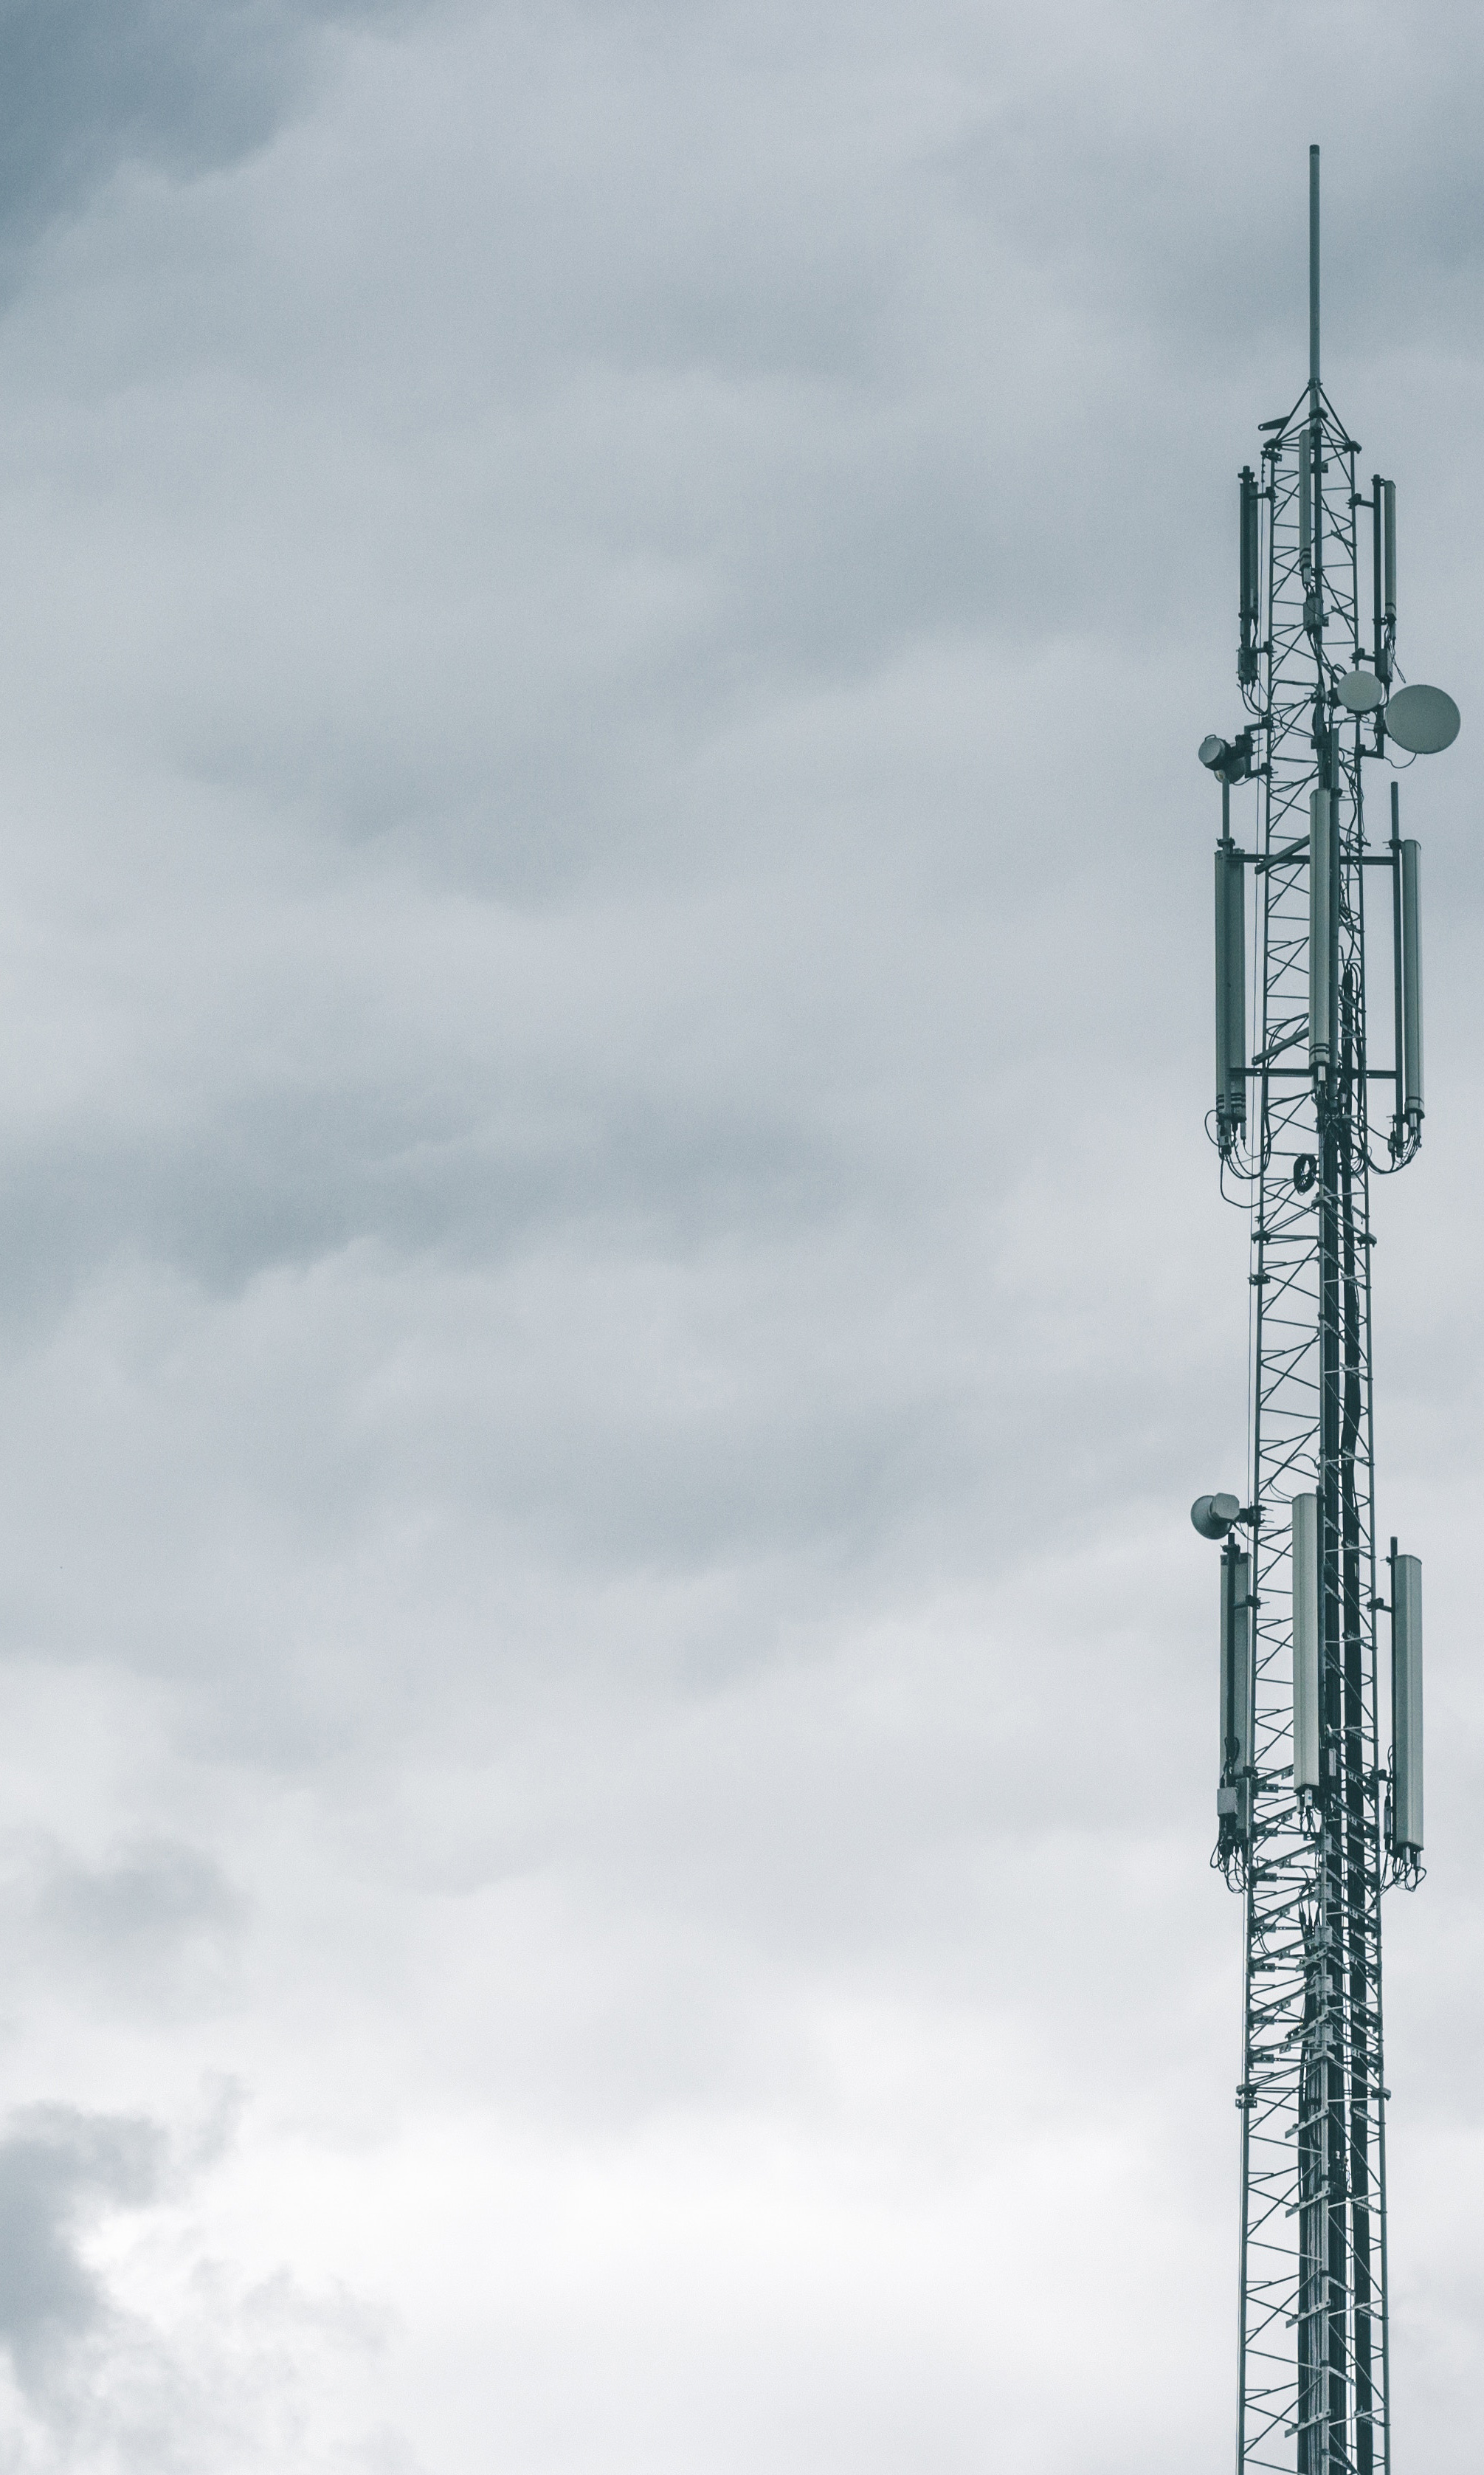 Case Studies on Placement of Telecom Facilities in Cities' Public Rights-of-Way -